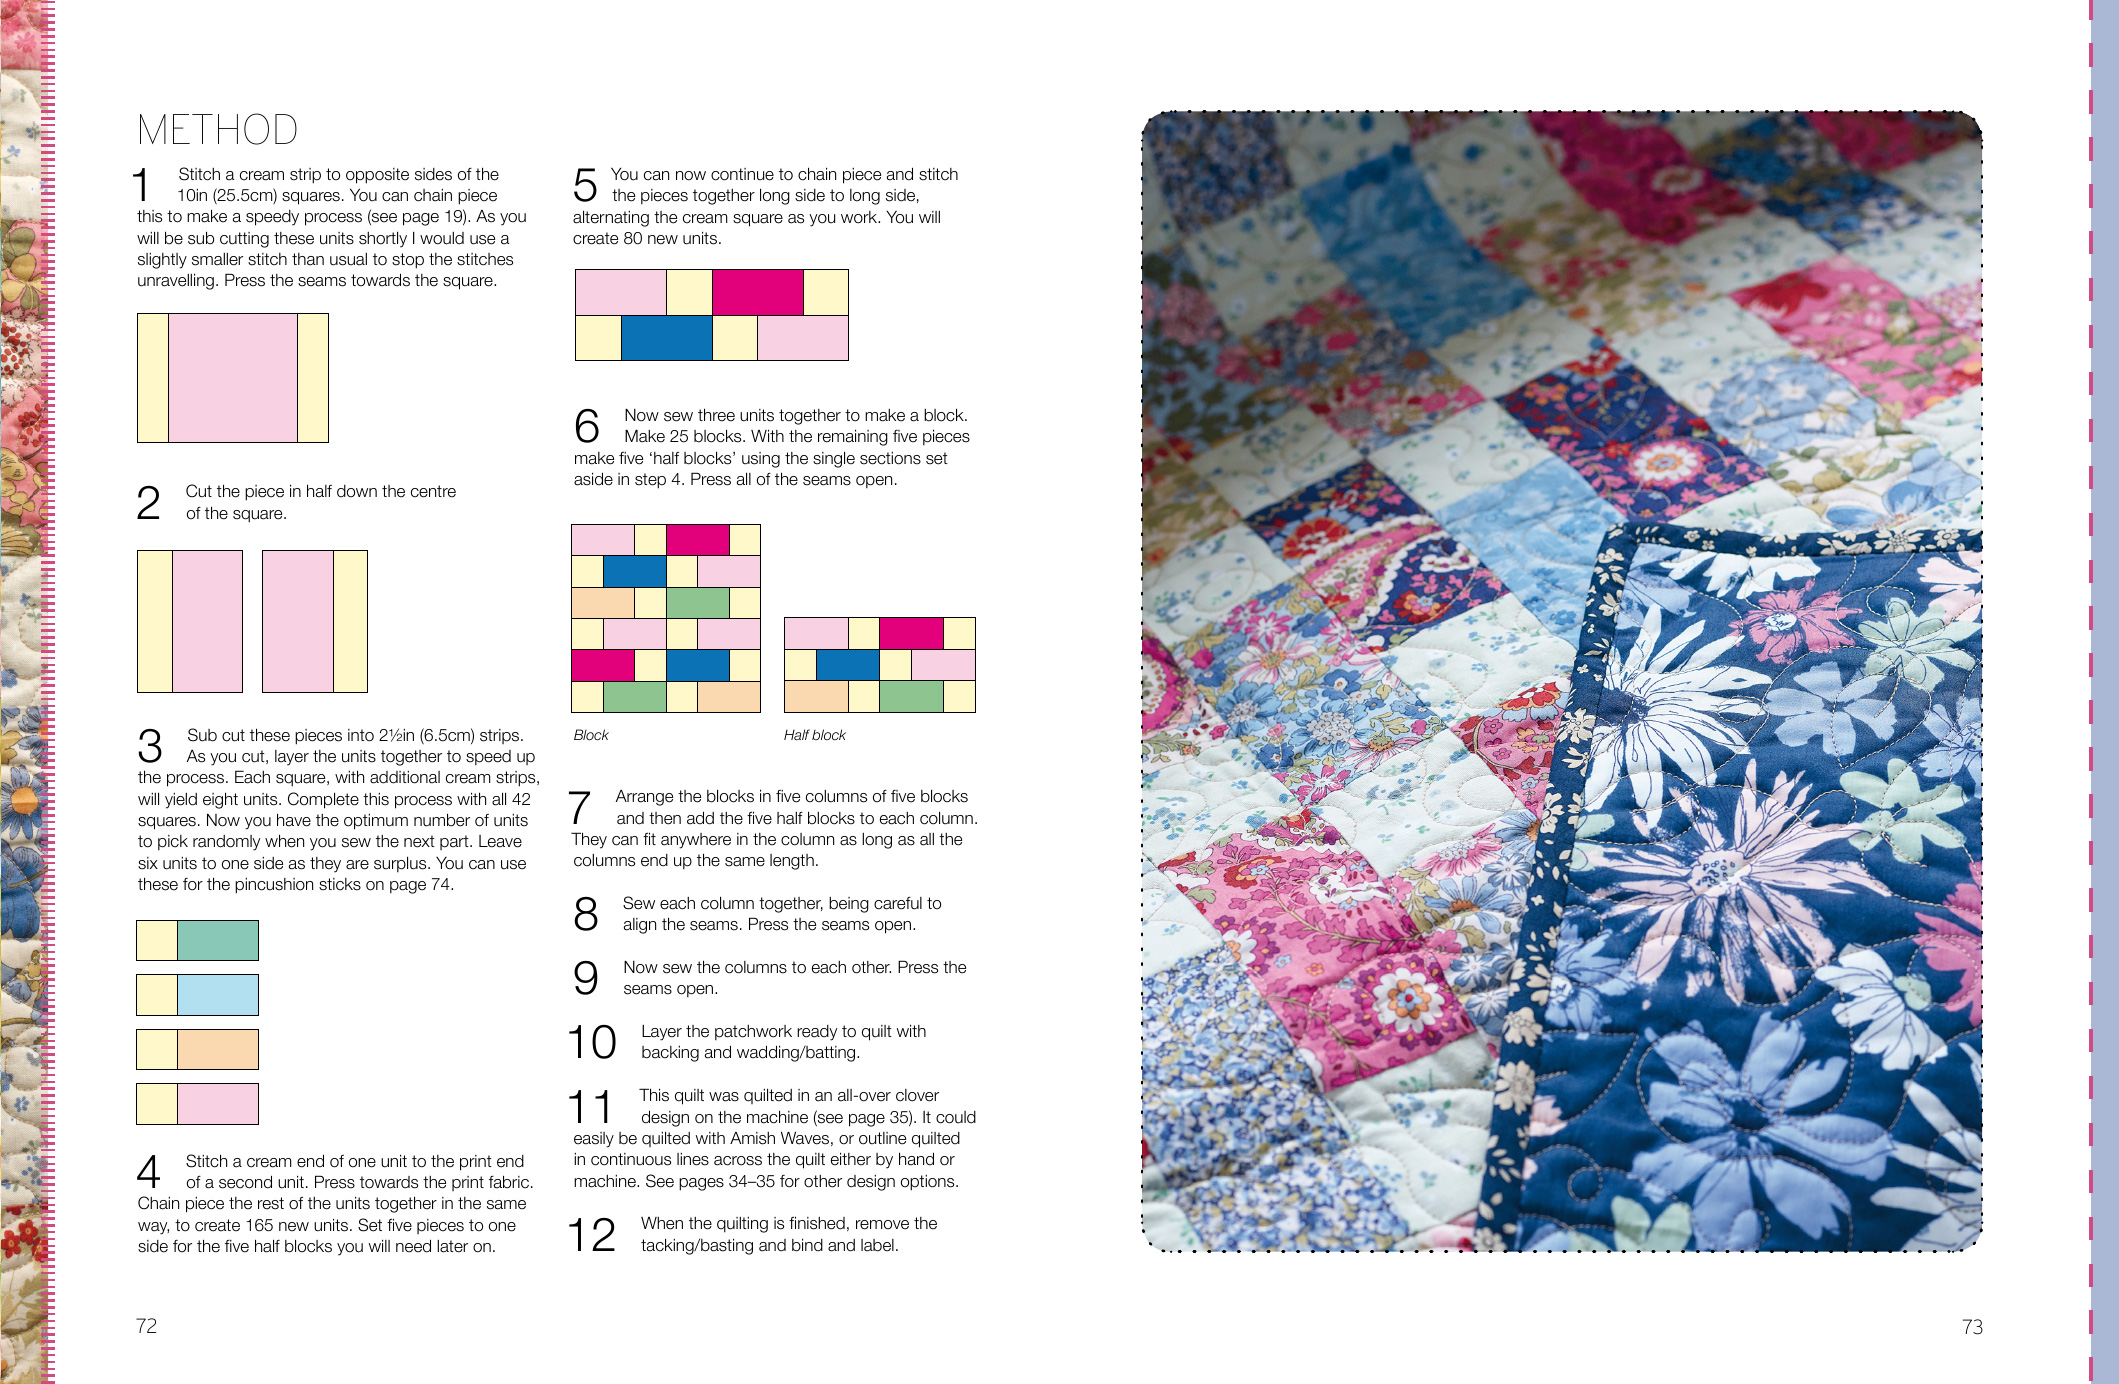 Sew-Layer-Cake-Quilts-and-Gifts-72-73